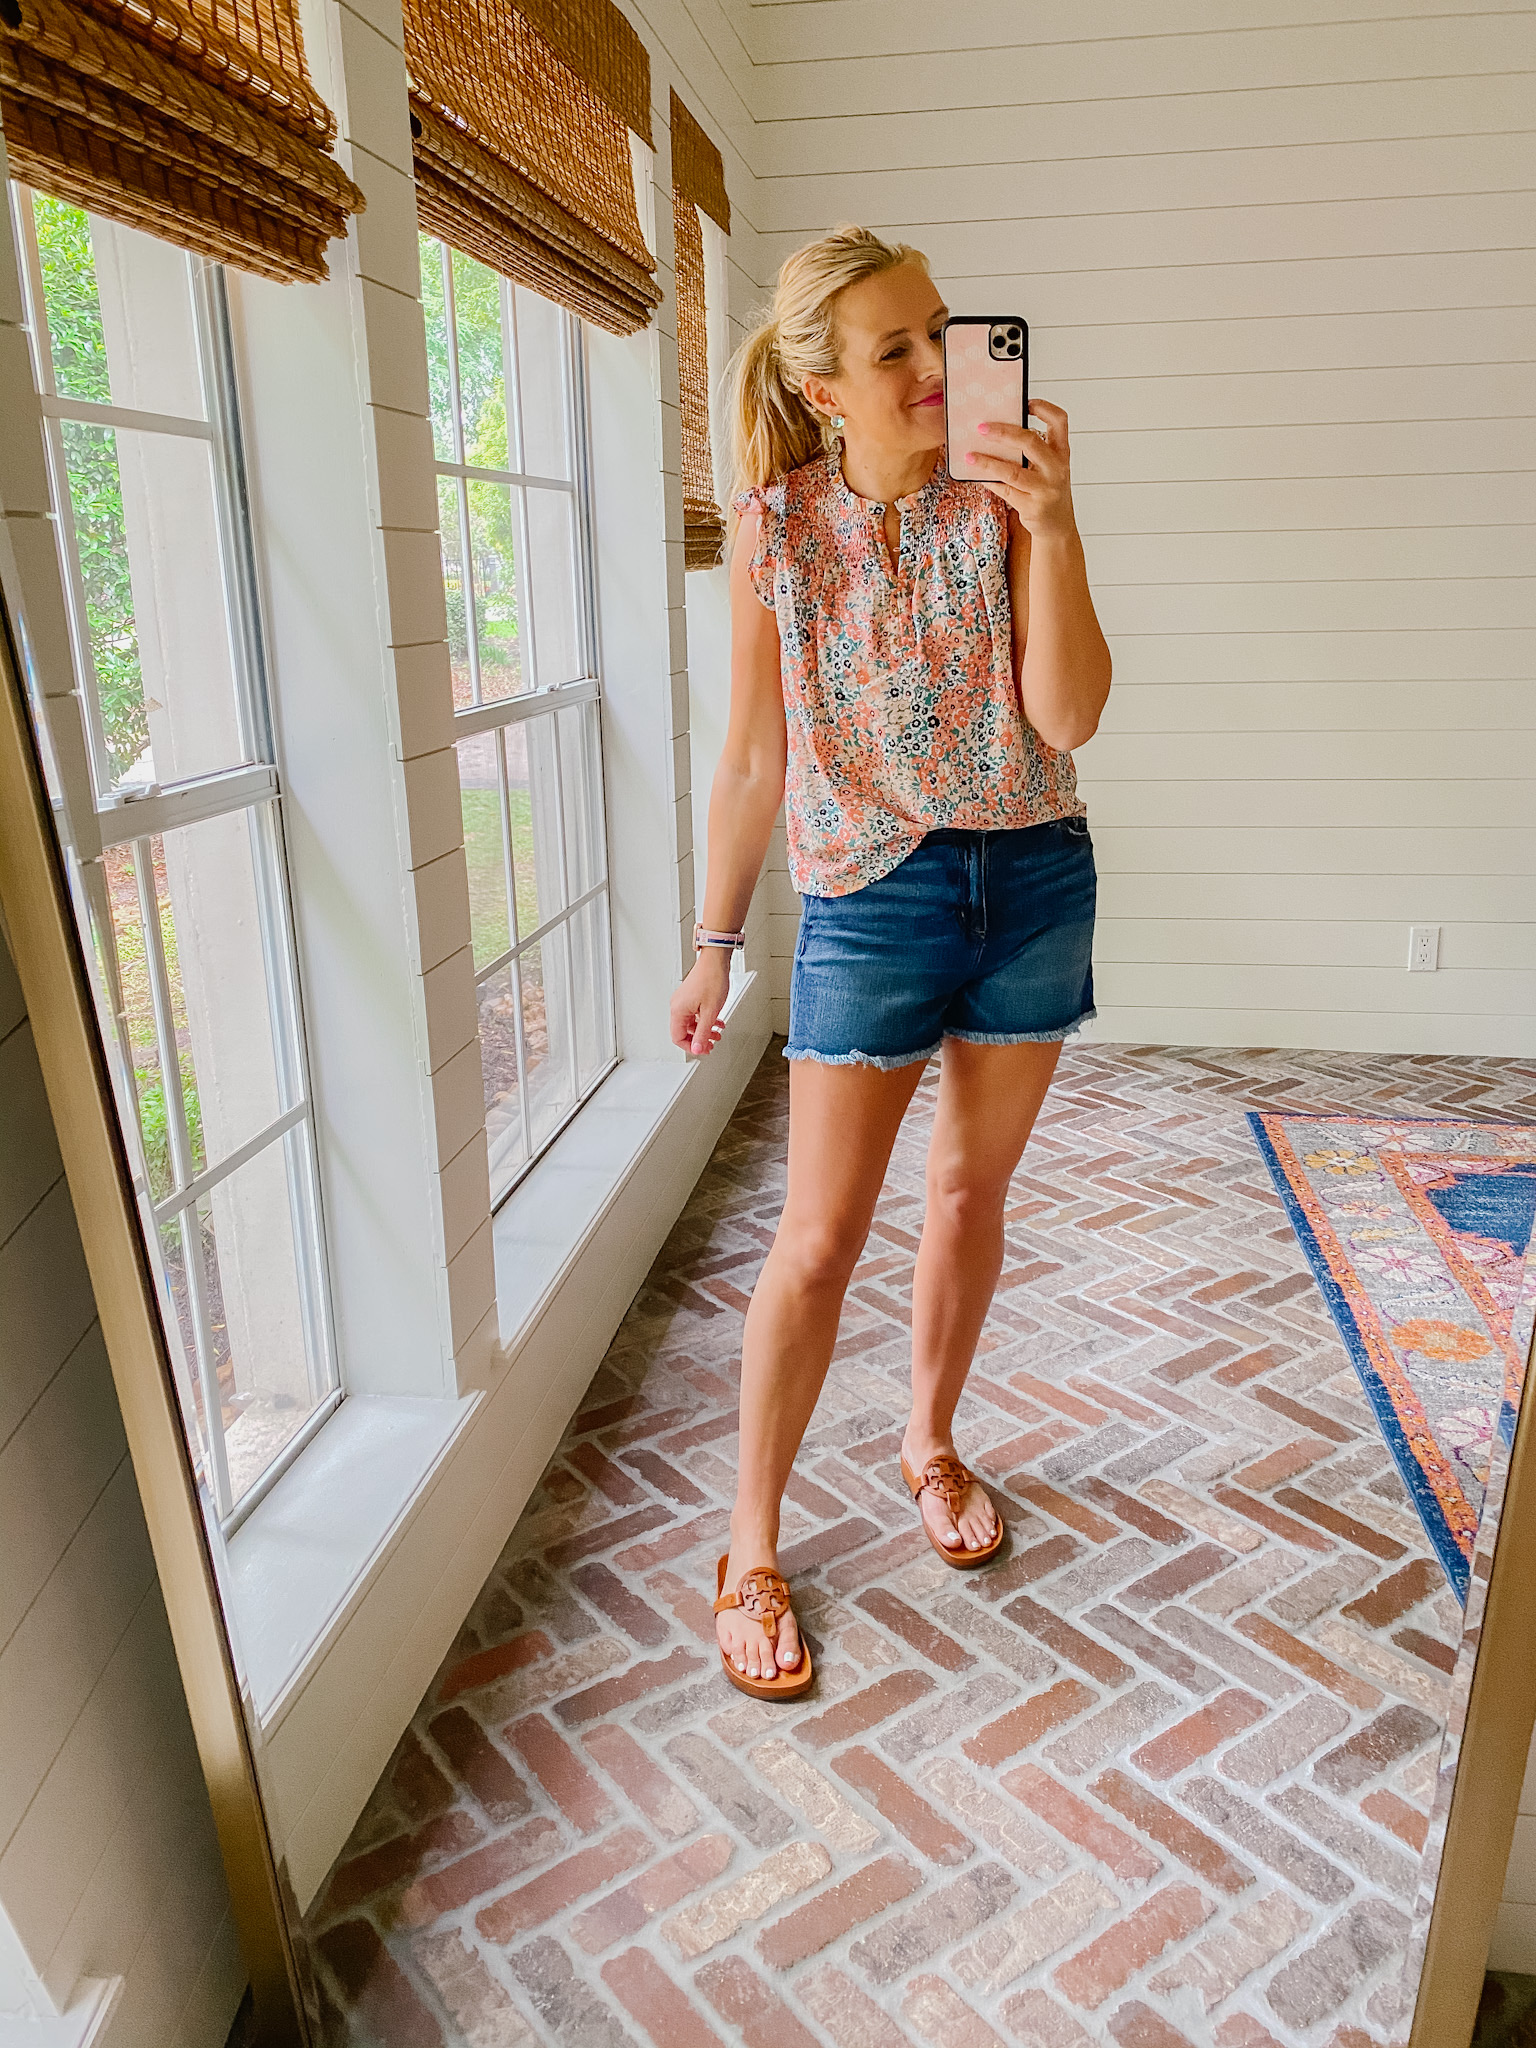 Loft Clothing by popular Houston fashion blog, The House of Fancy: image of a woman wearing a Loft floral print flutter sleeve top, distressed hem denim shorts, and brown Tory Burch slide sandals.